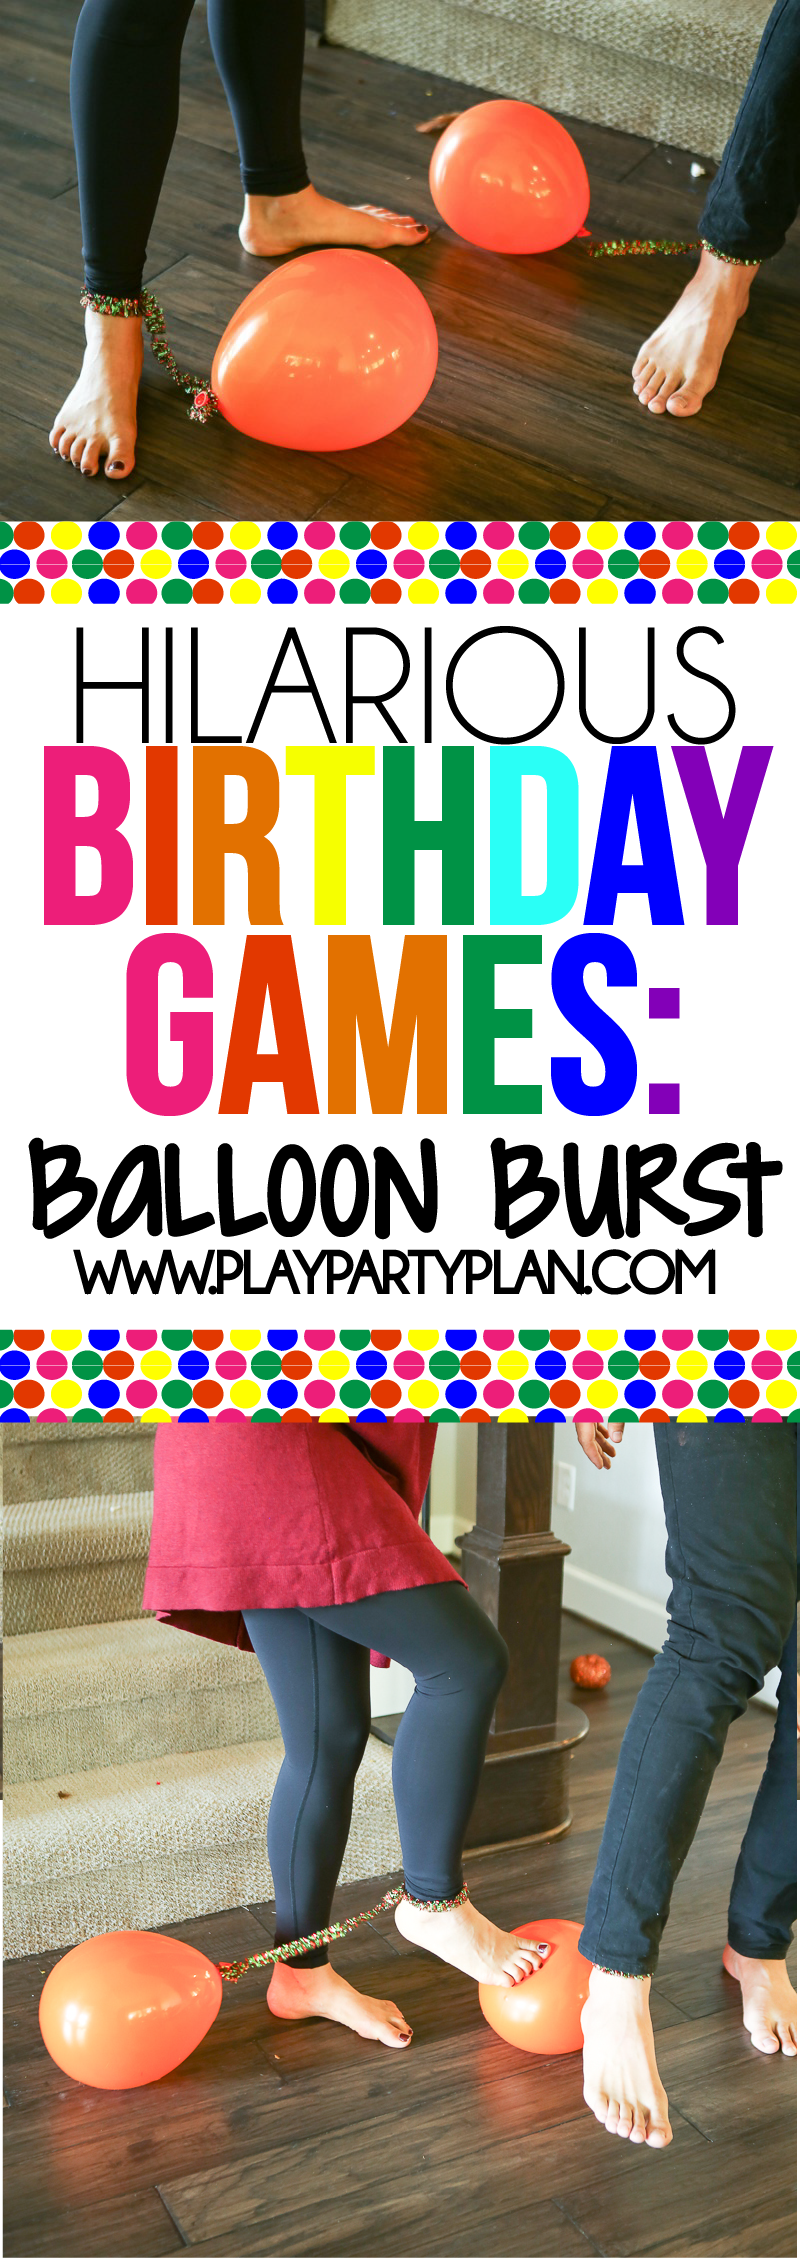 fun birthday party games for adults